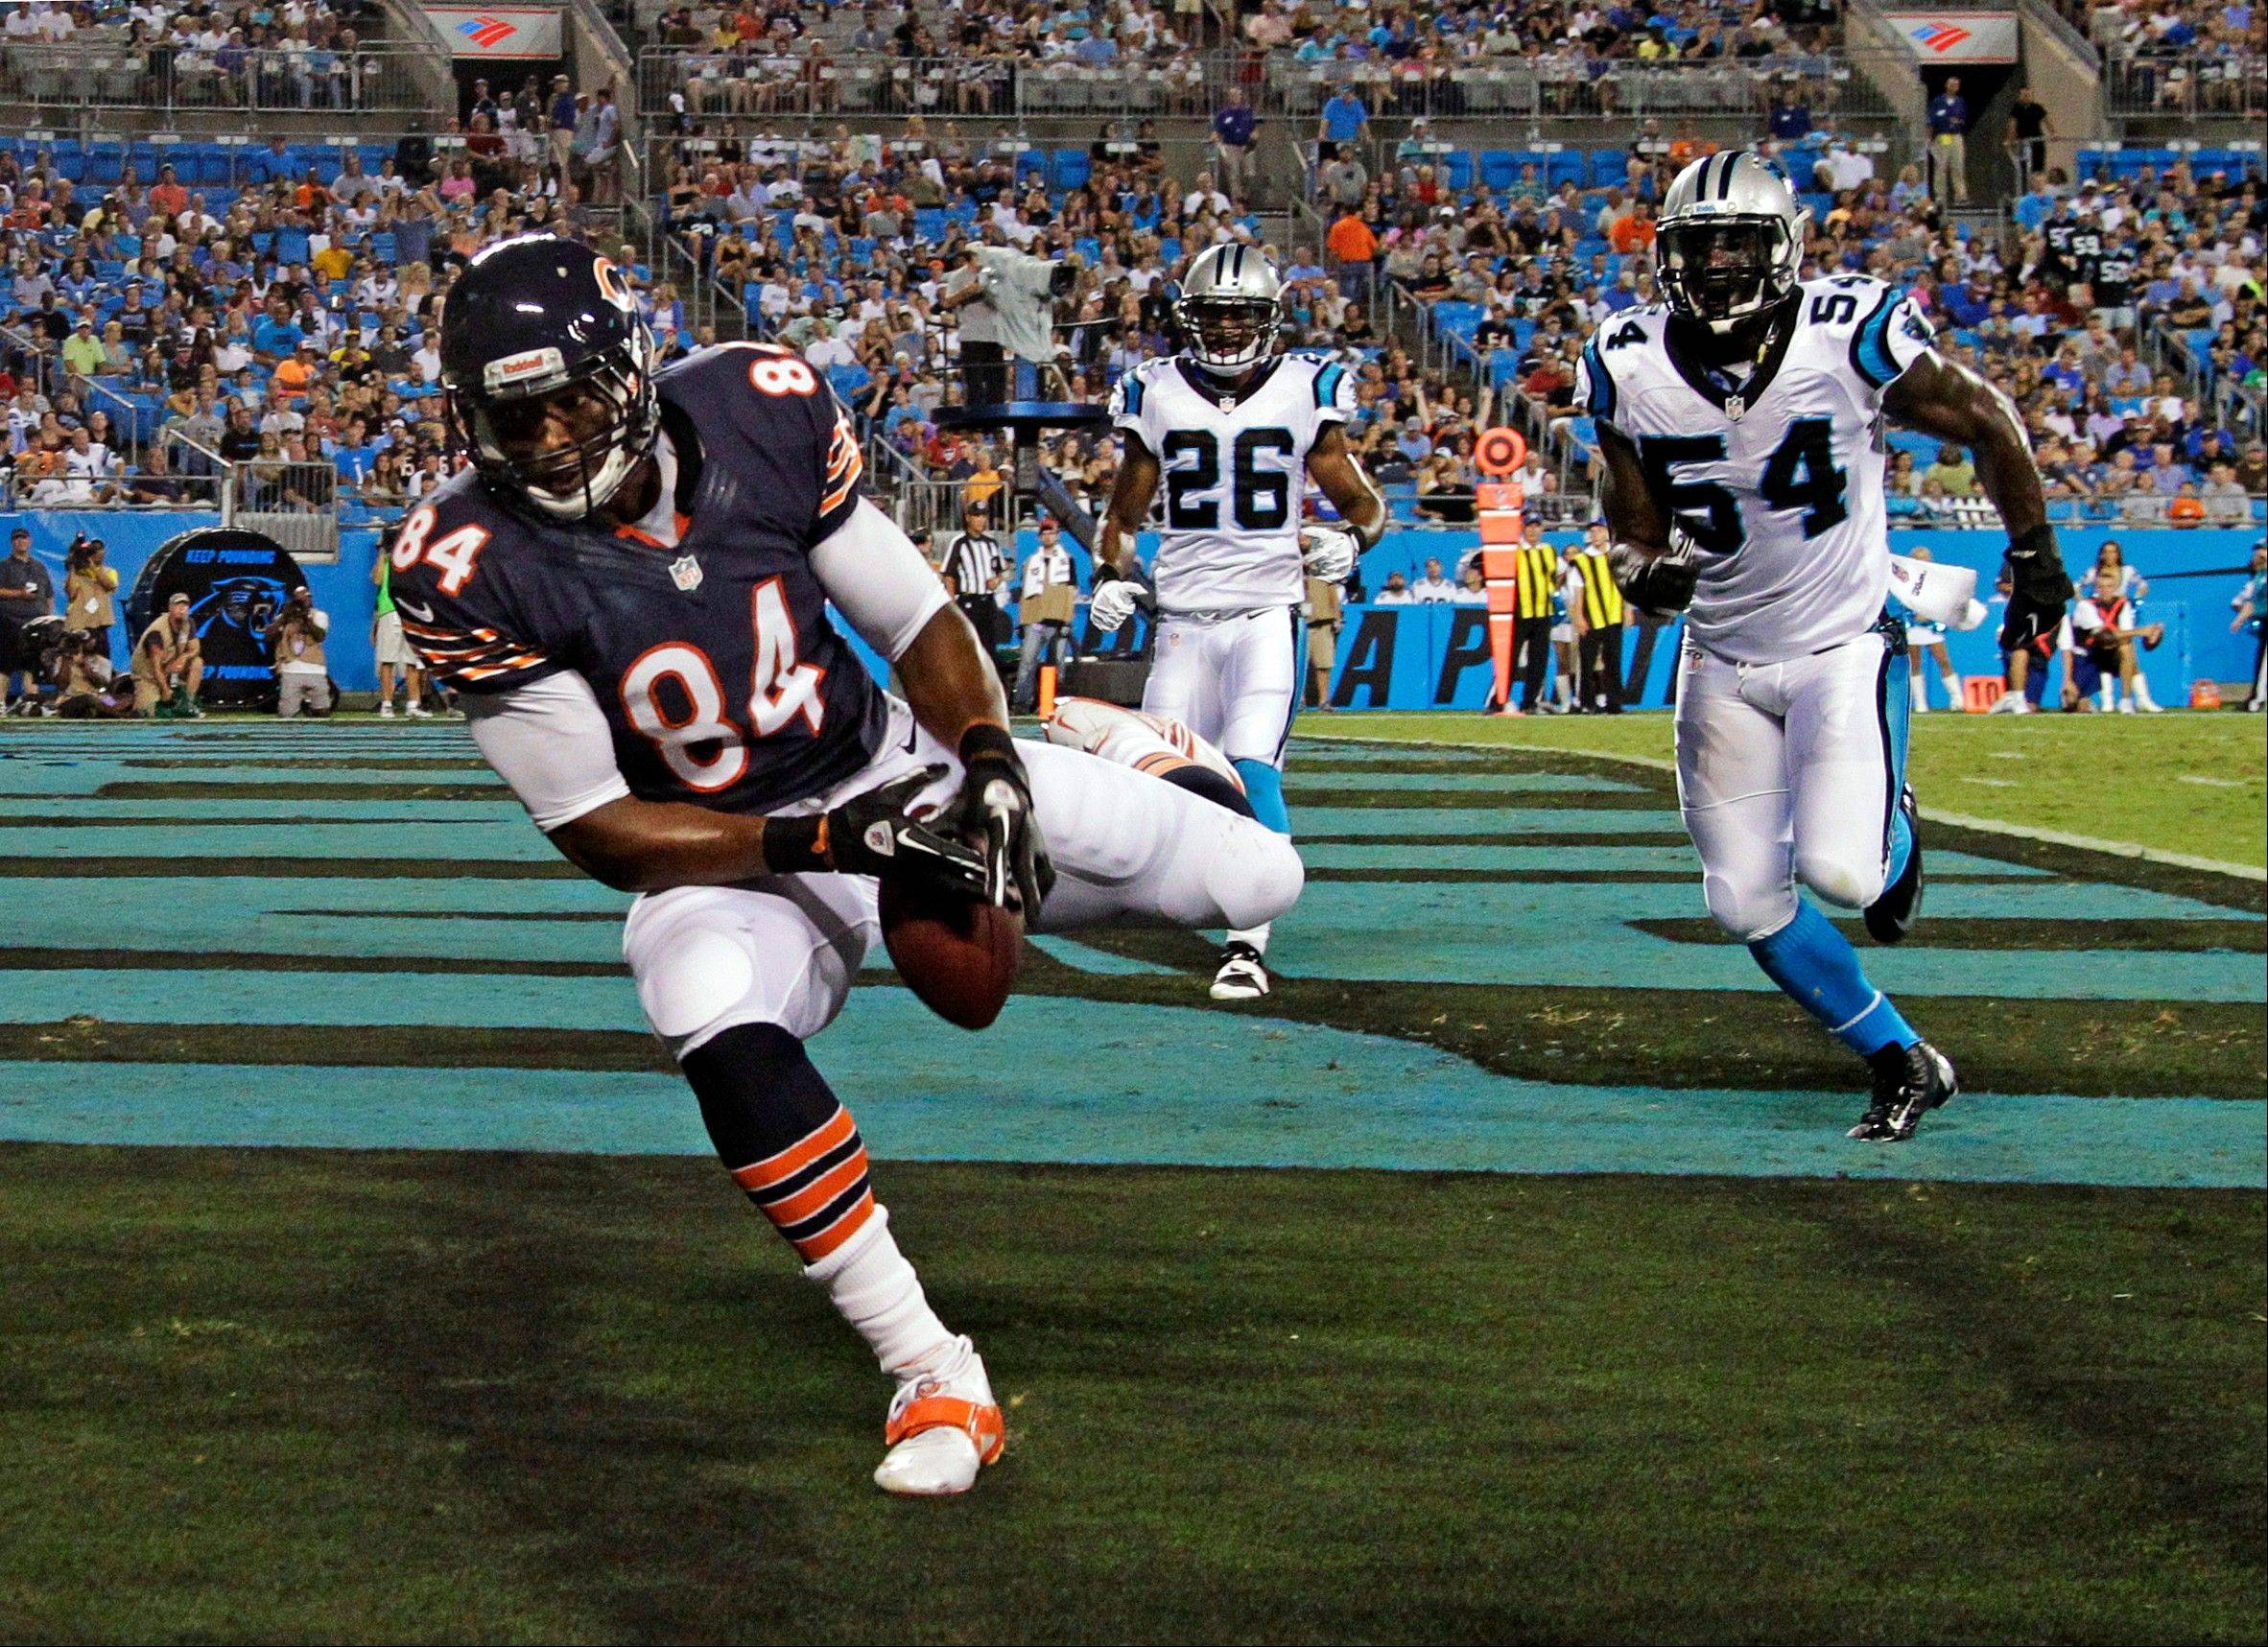 Chicago Bears' Fendi Onobun (84) drops a pass in the end zone as Carolina Panthers' Jason Williams (54) and D.J. Campbell (26) defend during the first half of a preseason NFL football game in Charlotte, N.C., Friday, Aug. 9, 2013. (AP Photo/Bob Leverone)